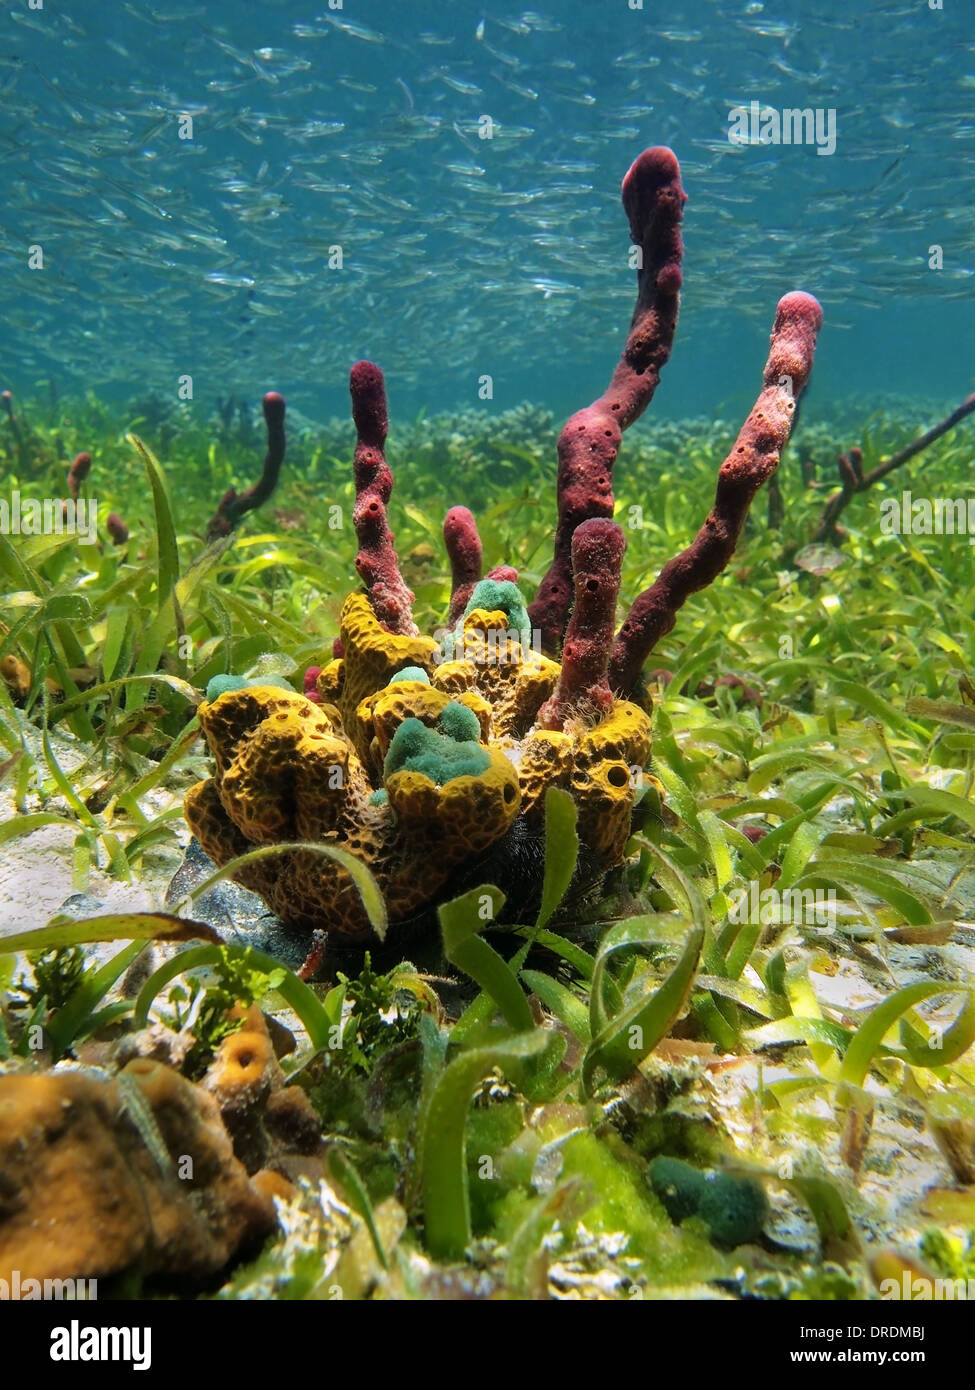 Underwater view of colorful sea sponge with seagrass and shoal of fish, Caribbean sea, Colombia - Stock Image